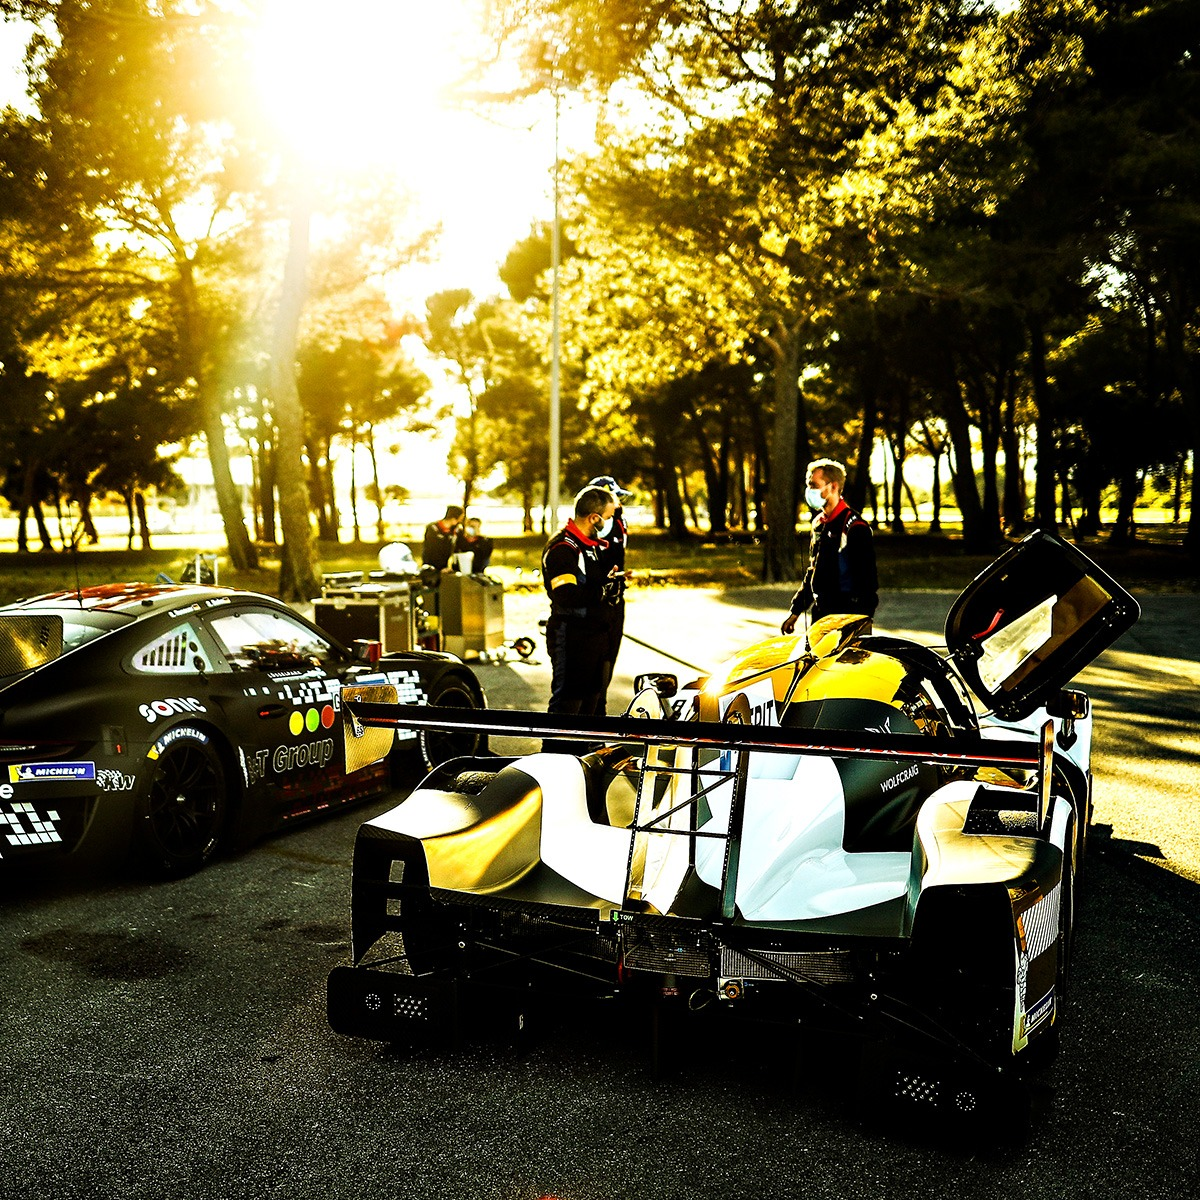 Nielsen Racing 6 - Wells and Noble shine in Le Mans Cup at Monza